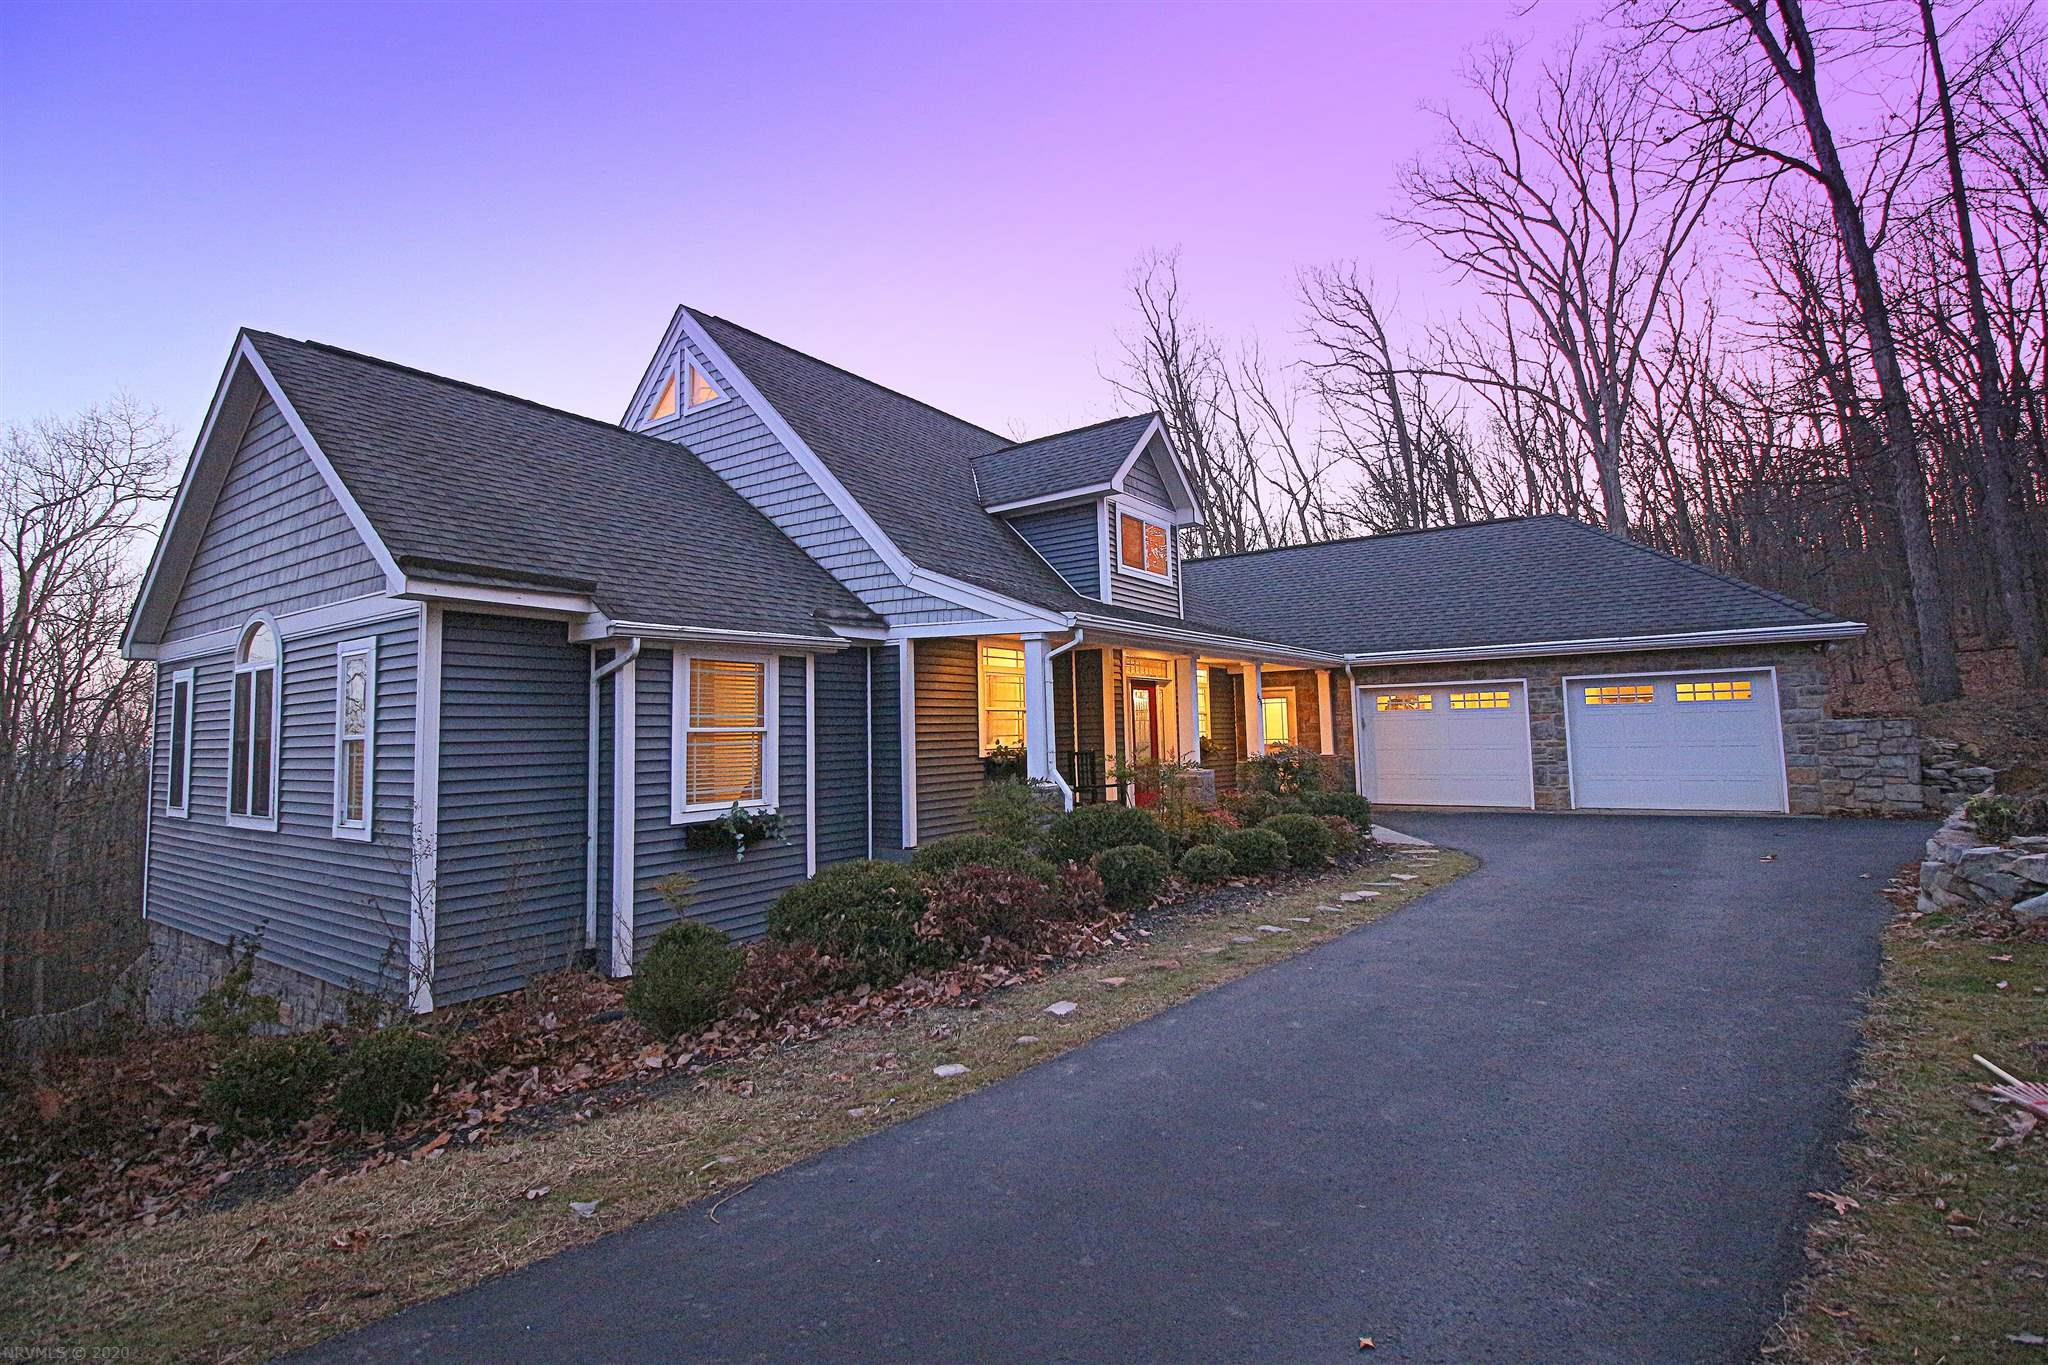 Welcome to a home that achieves the desired connection between escape to the outdoors with modern living. Only minutes to Virginia Tech, this spectacular home on 4.4 acres has a contemporary design. Cathedral ceilings adorned by exposed beams and open concept kitchen with an island. French doors open to a vast deck, and oversized windows reveal spectacular views of the sunsets, starry nights, and surrounding mountains. Carefully designed for luxury living, this contemporary craftsman has three bedrooms, the garage, and laundry on the entry level. The master suite has vaulted ceilings with a walk-in closet. Upstairs is an exciting and expansive loft space, ideal for a home office, studio, or playroom. The lower level has a bedroom, full bath and kitchenette.